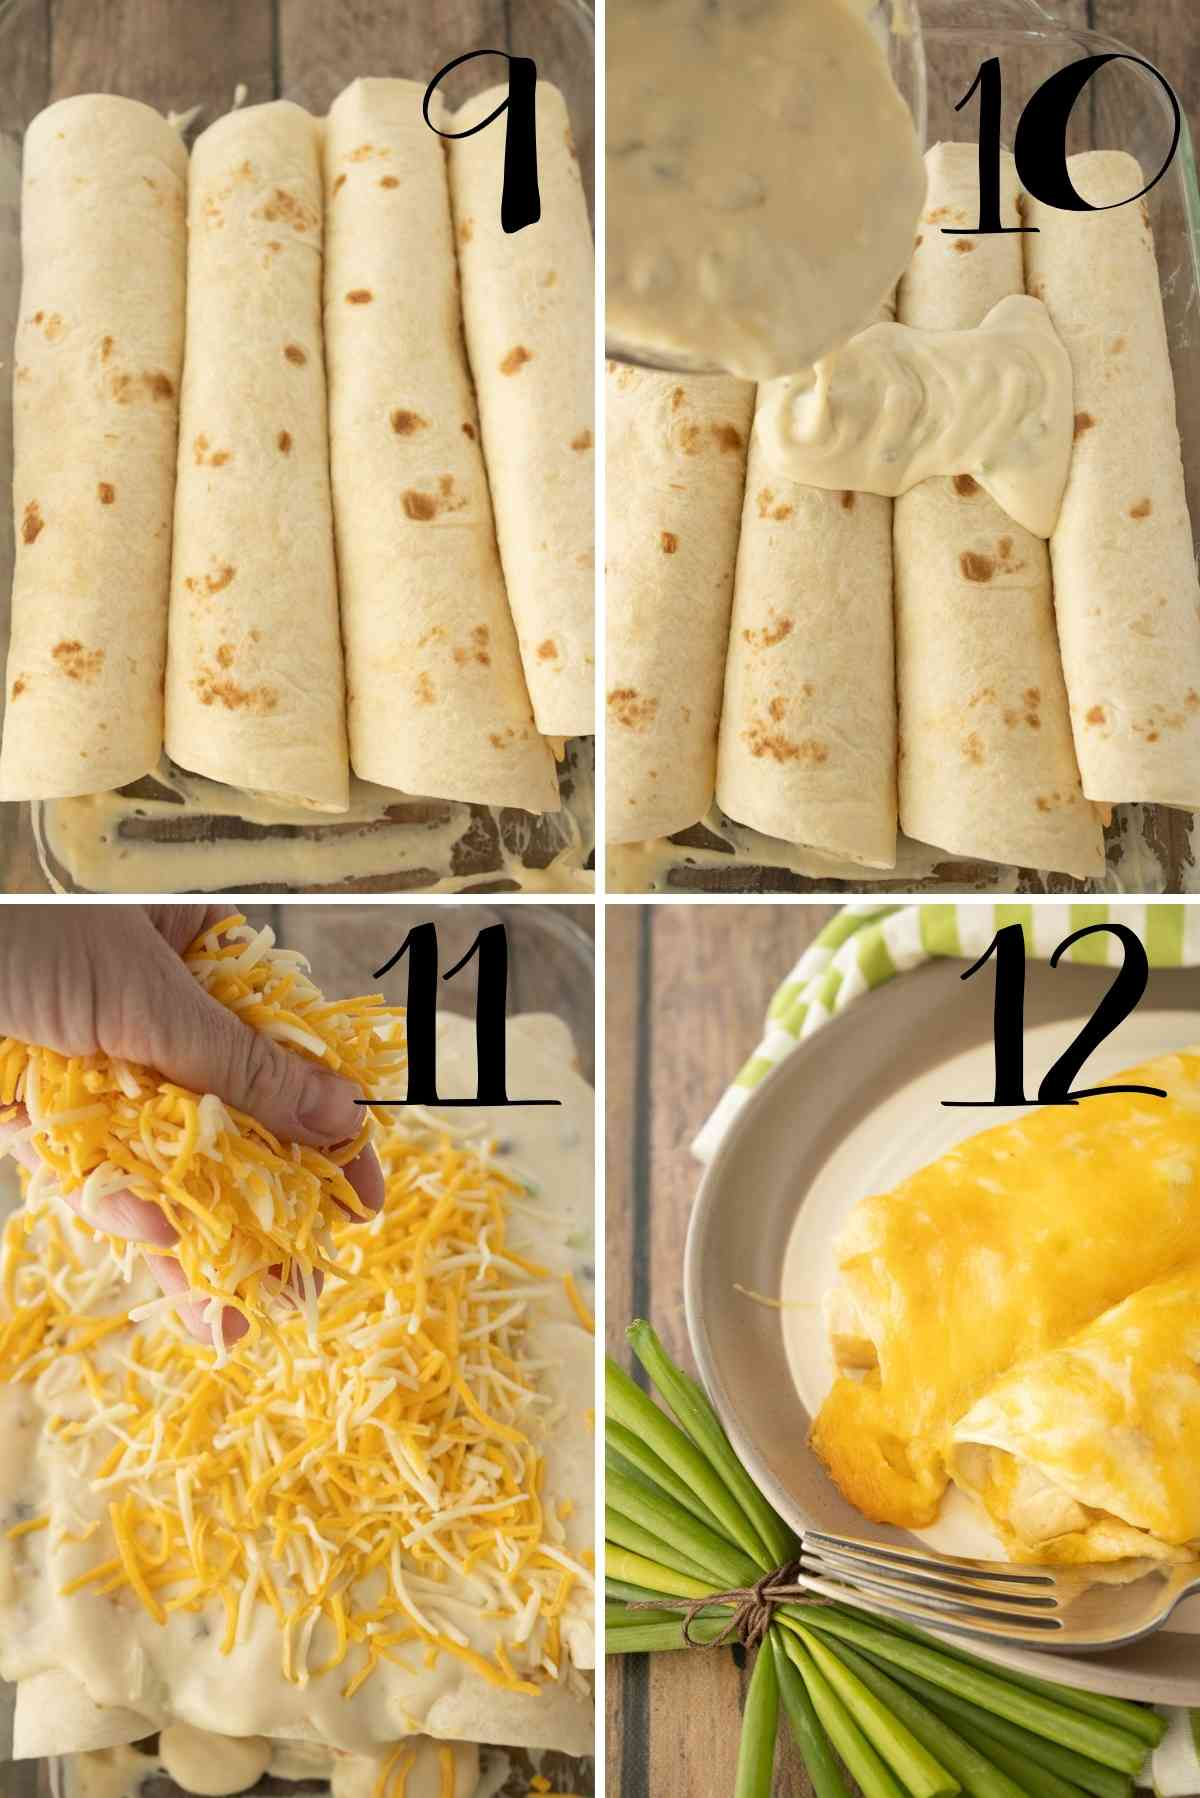 Roll up, place seam side down, top with sauce and cheese.  Bake!